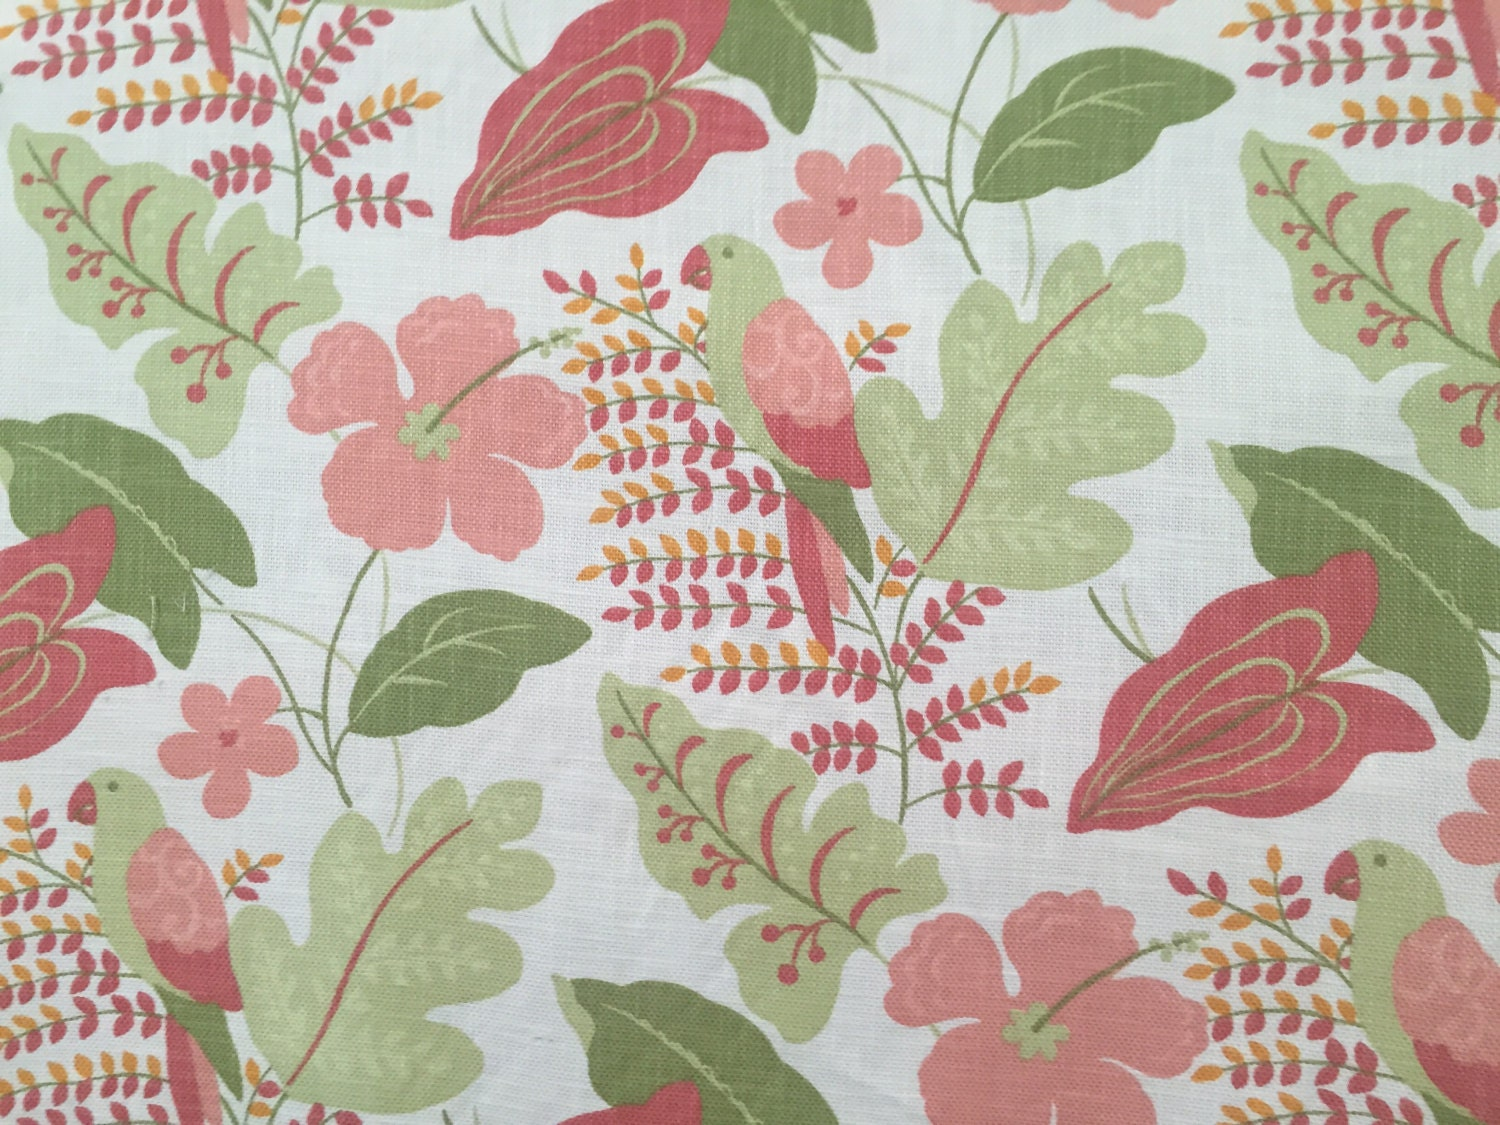 Hibiscus Parrot Tropical Floral Upholstery Fabric By The Etsy